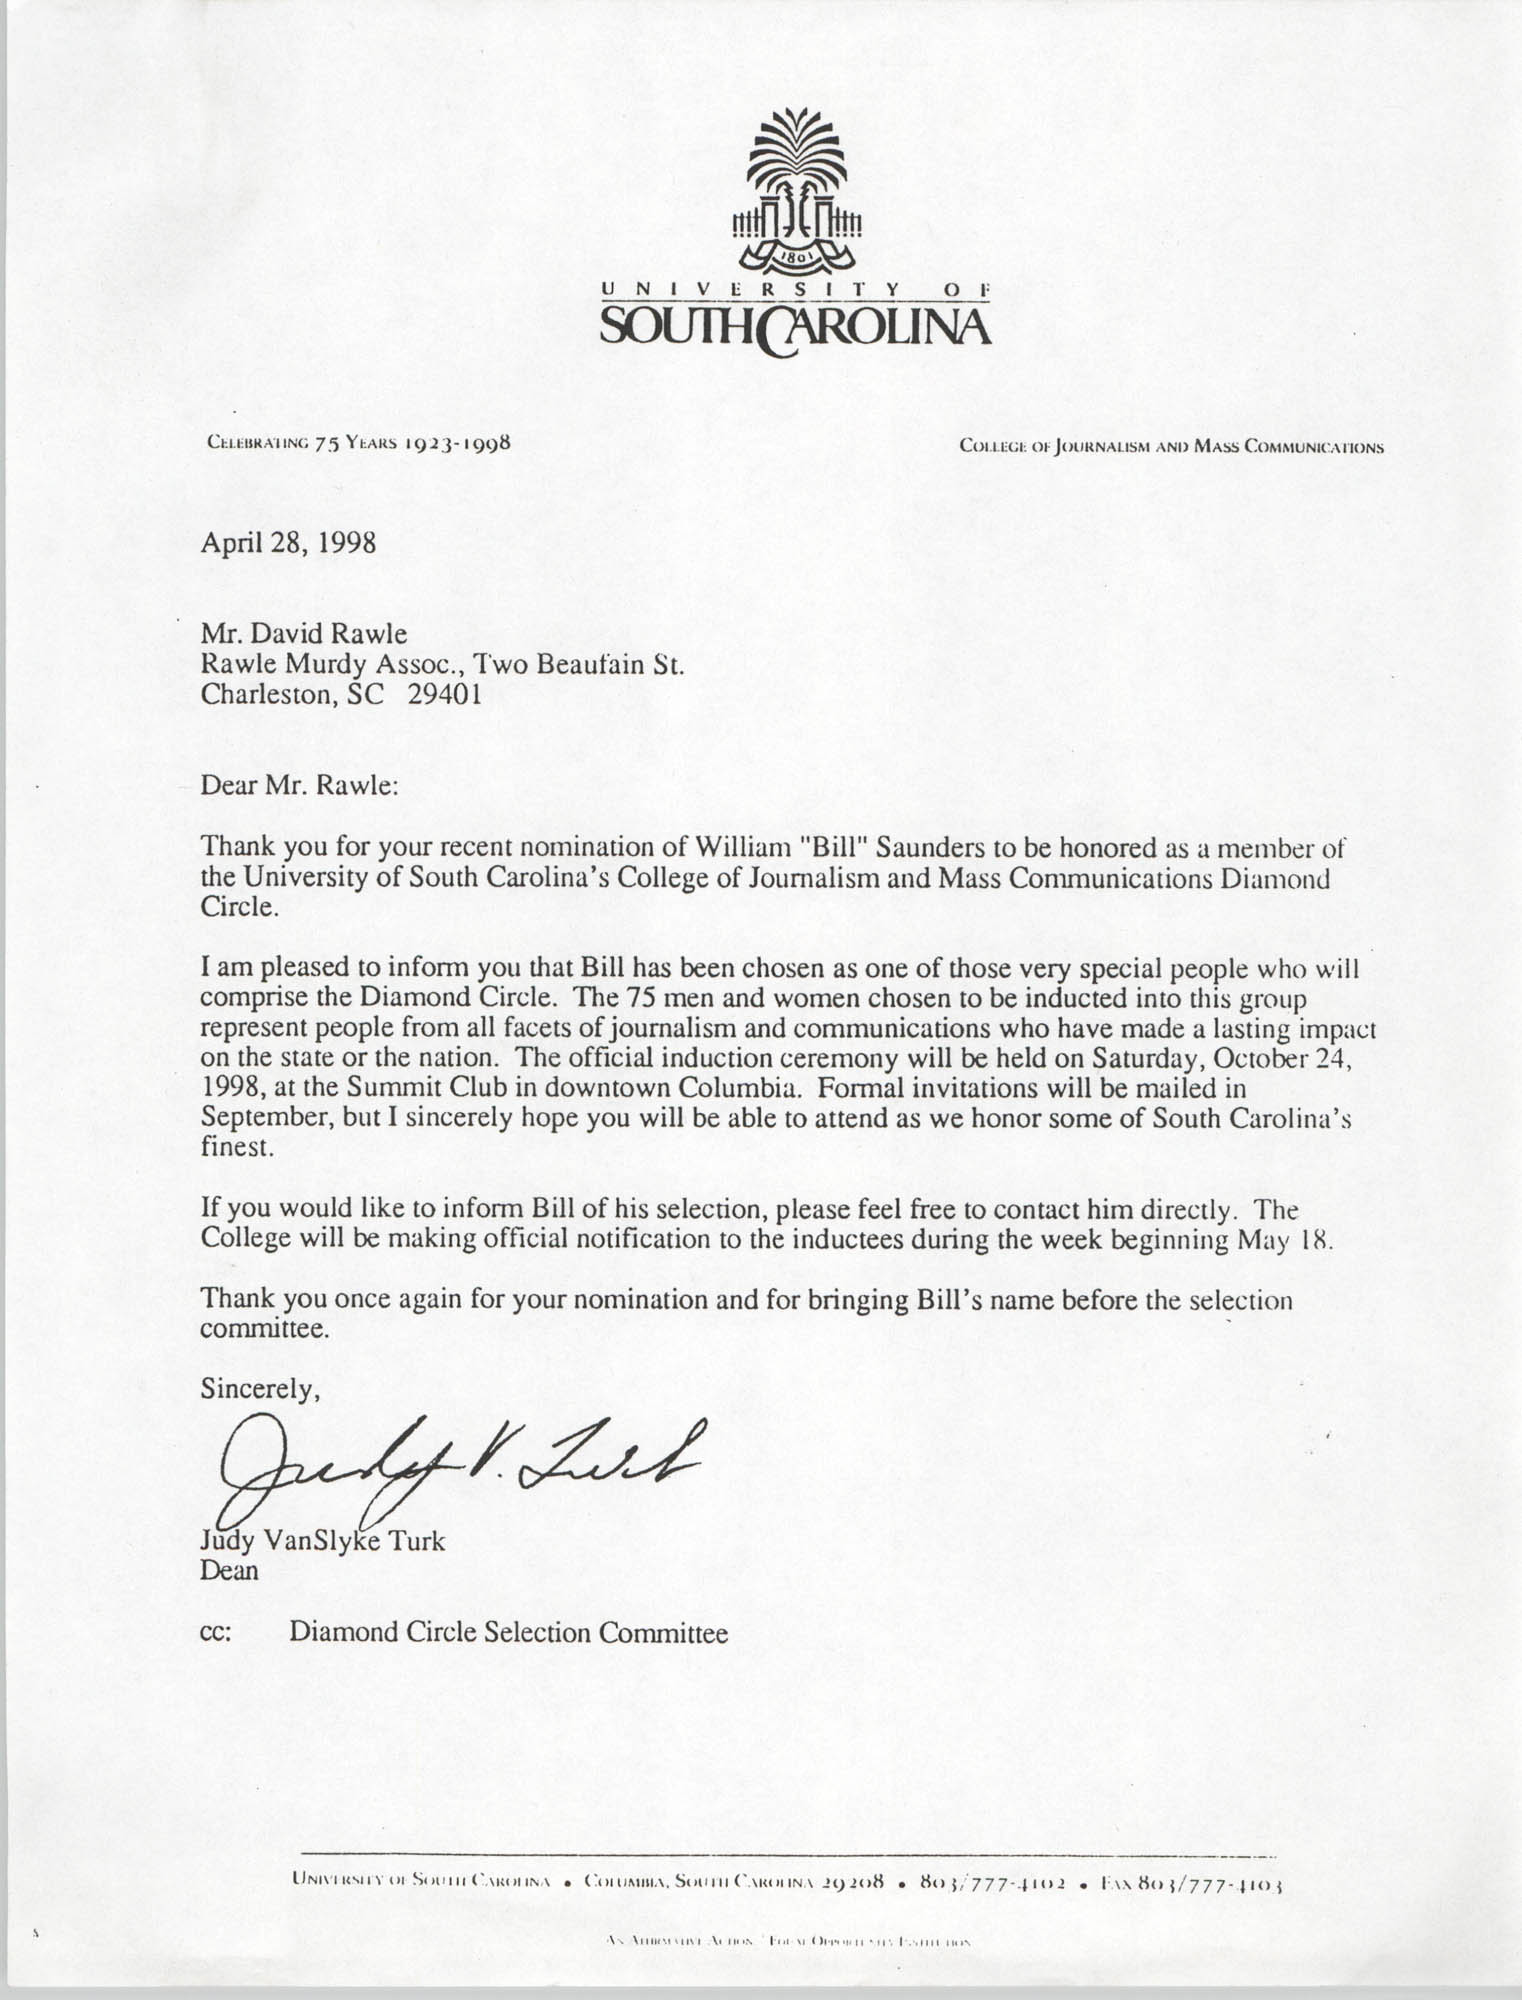 Letter from Judy VanSlyke Turk to David Rawle, April 28, 1998